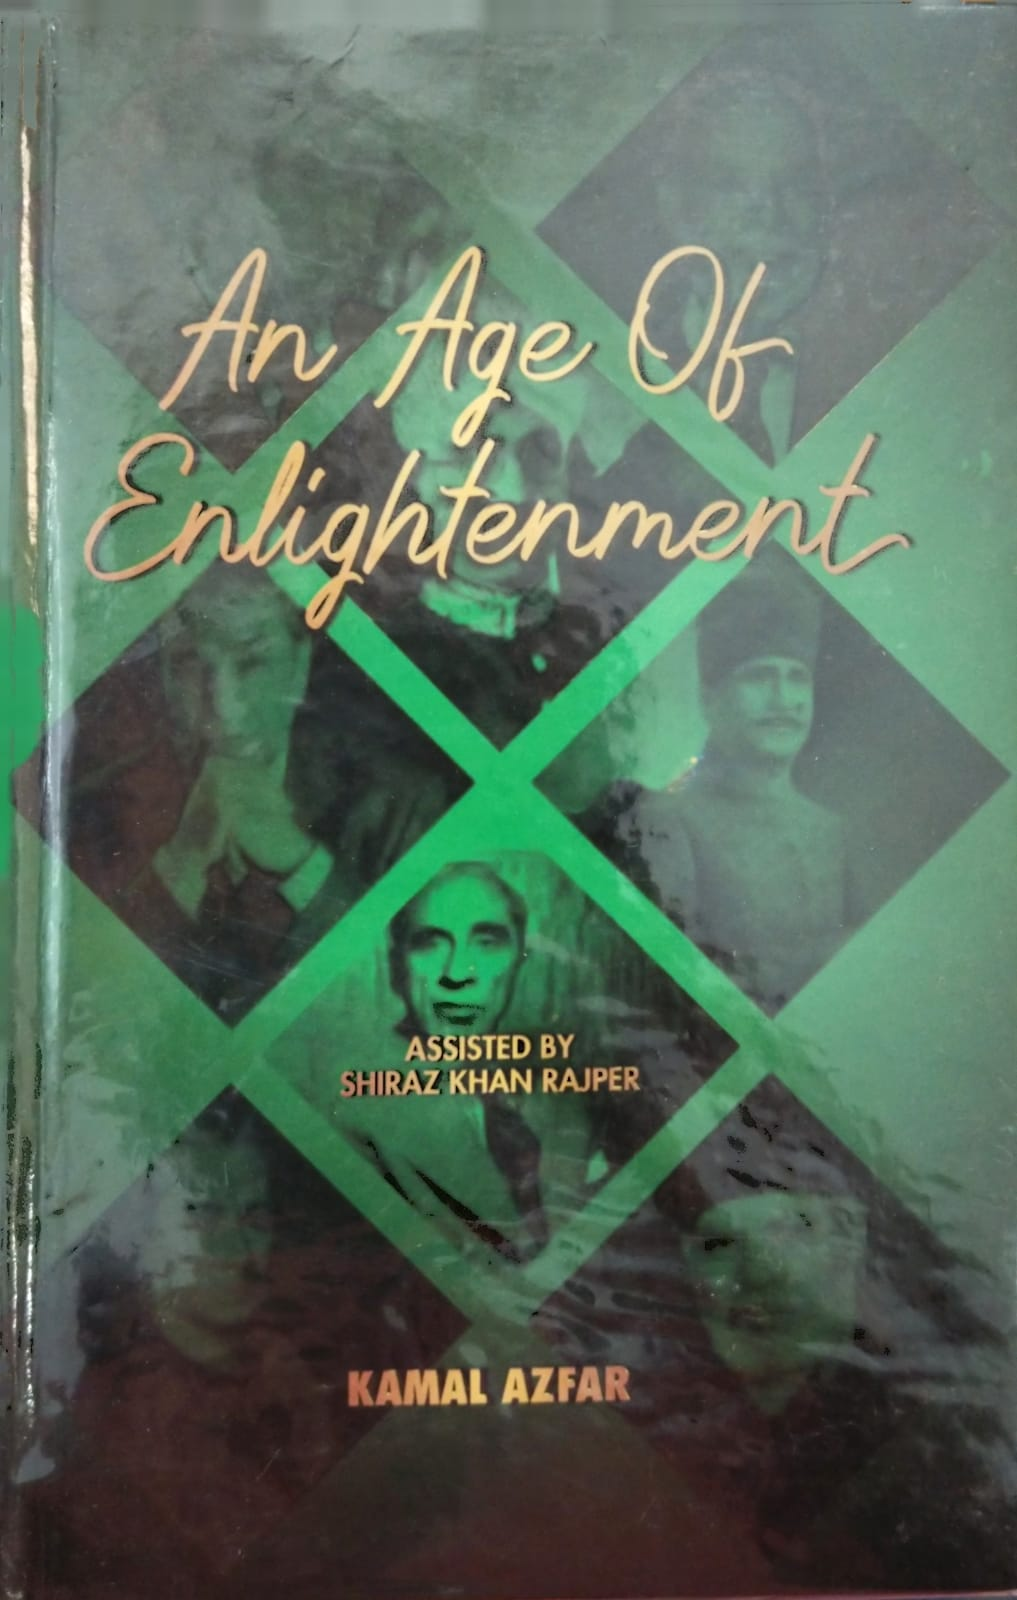 An Age of Enlightenment